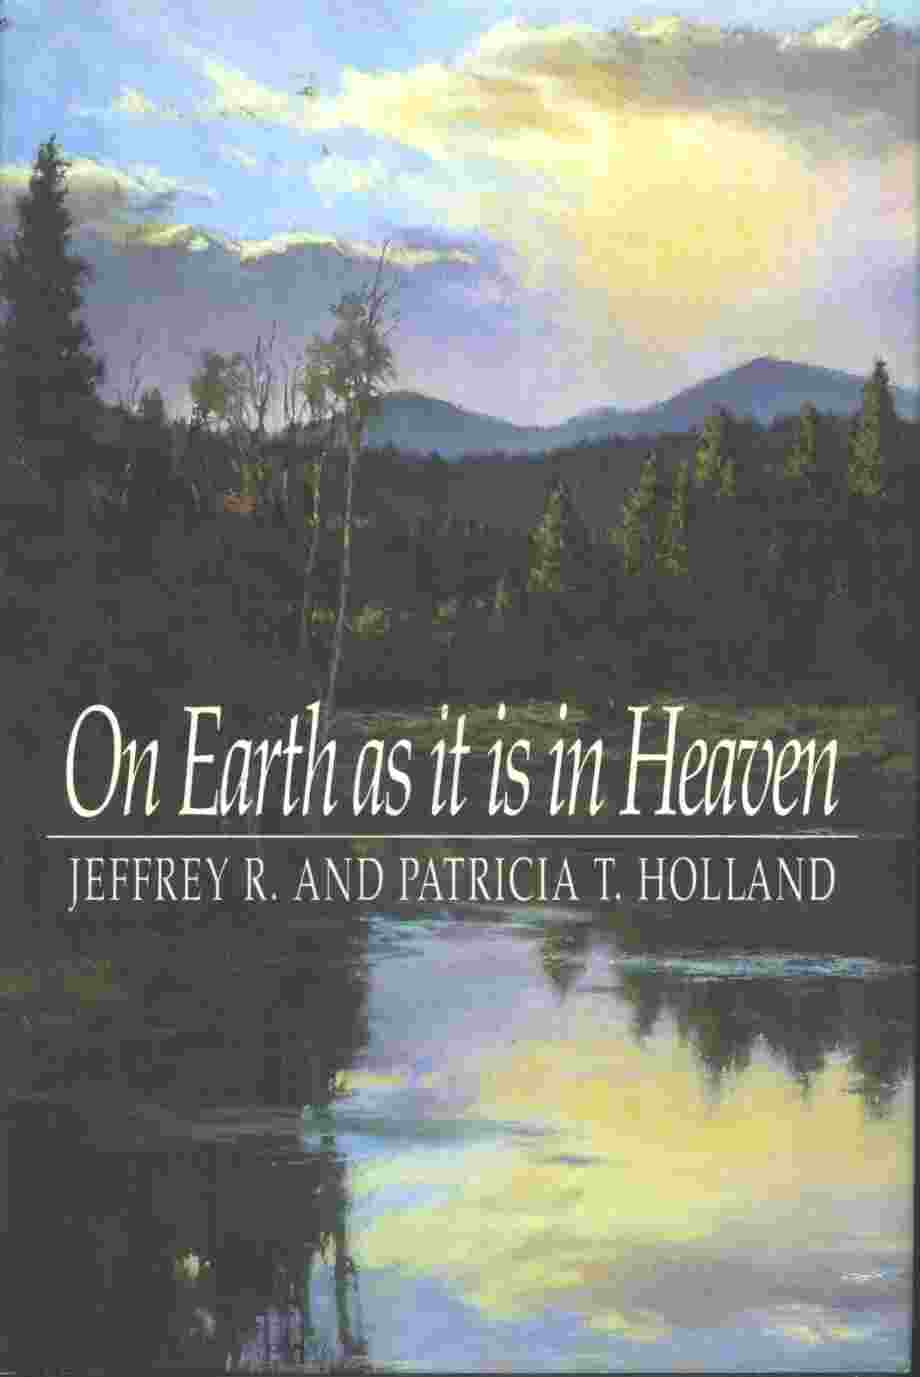 ON EARTH AS IT IS IN HEAVEN, Holland, Jeffrey R. ; Holland, Patricia T.